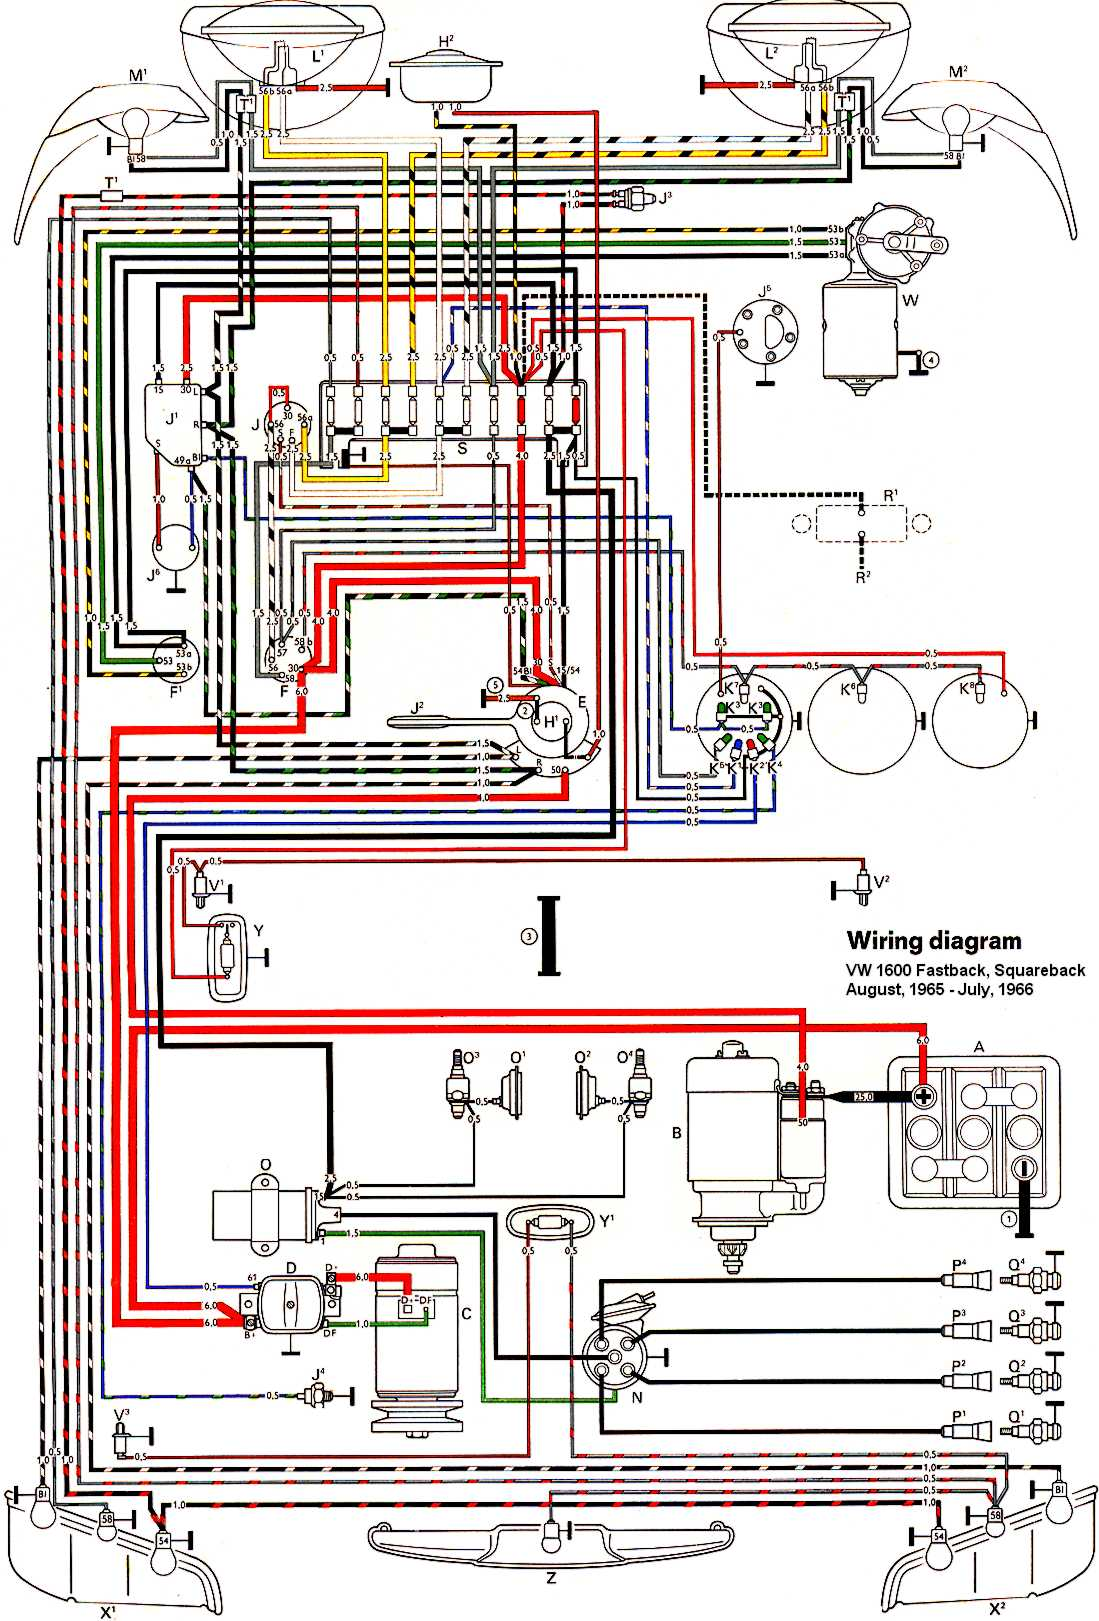 volkswagen up wiring diagram thesamba.com :: type 3 wiring diagrams #1